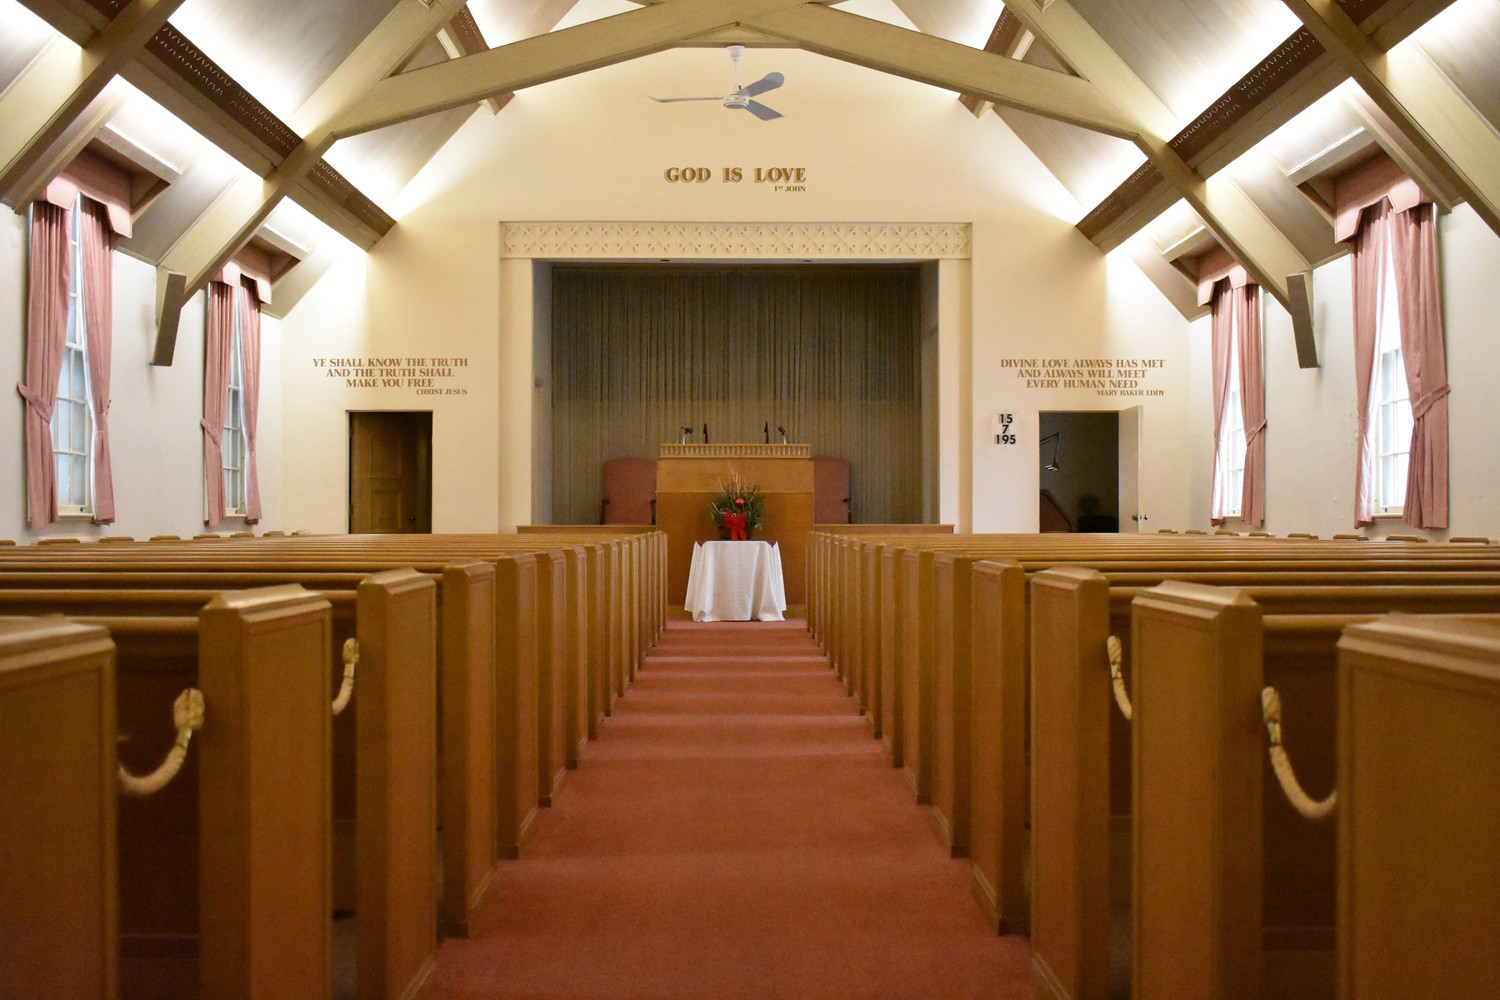 Christian Scientists, who believe that humans are not material, but rather spiritual, gather each week in the large Morris Avenue church.